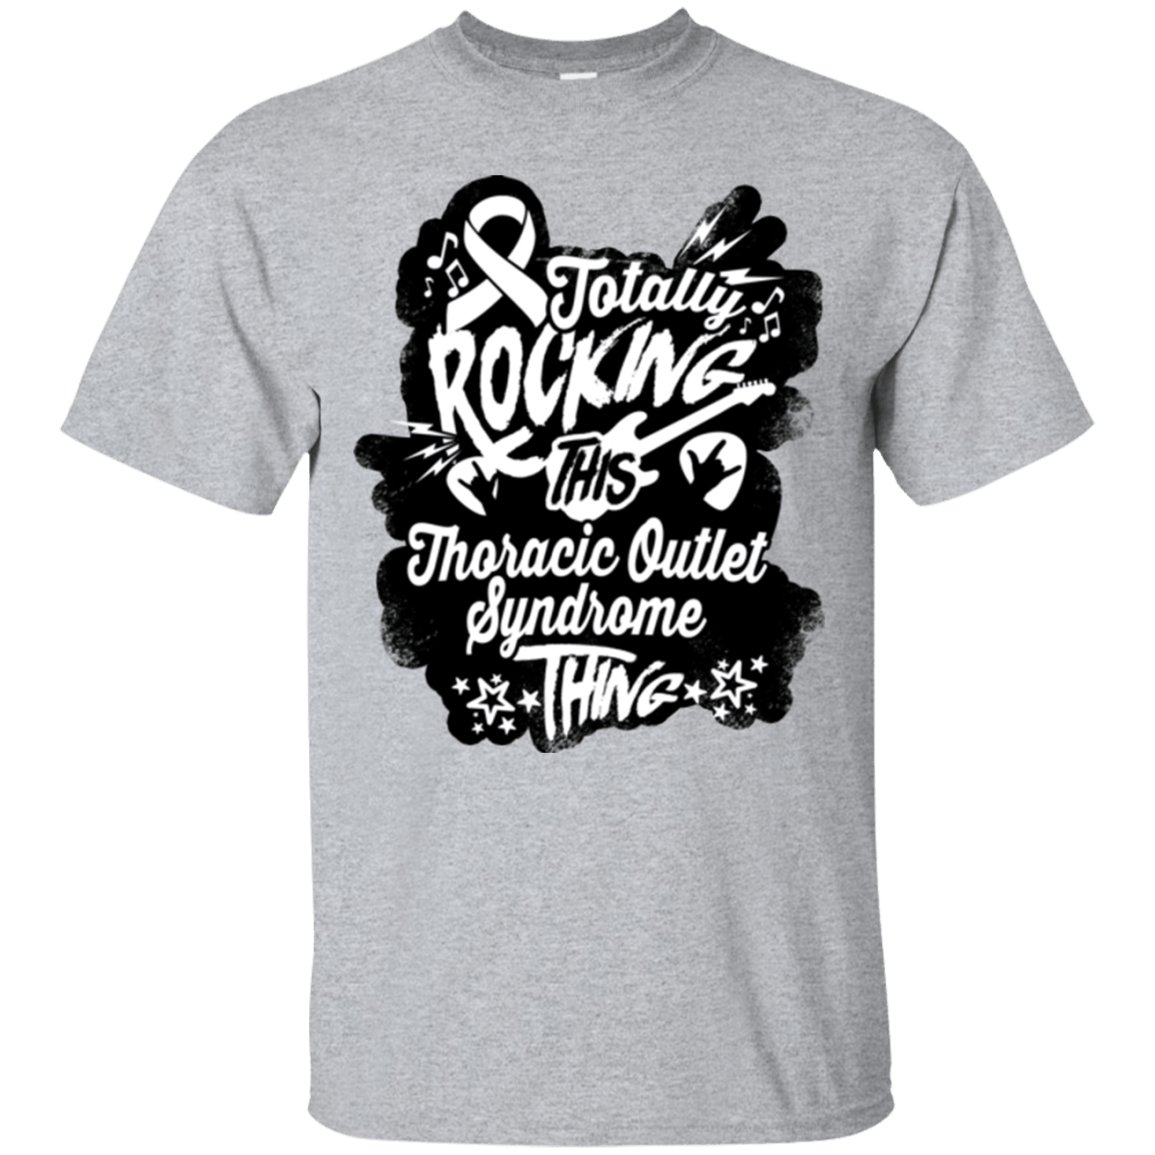 T-Shirts - Rocking Thoracic Outlet Syndrome Unisex Shirt